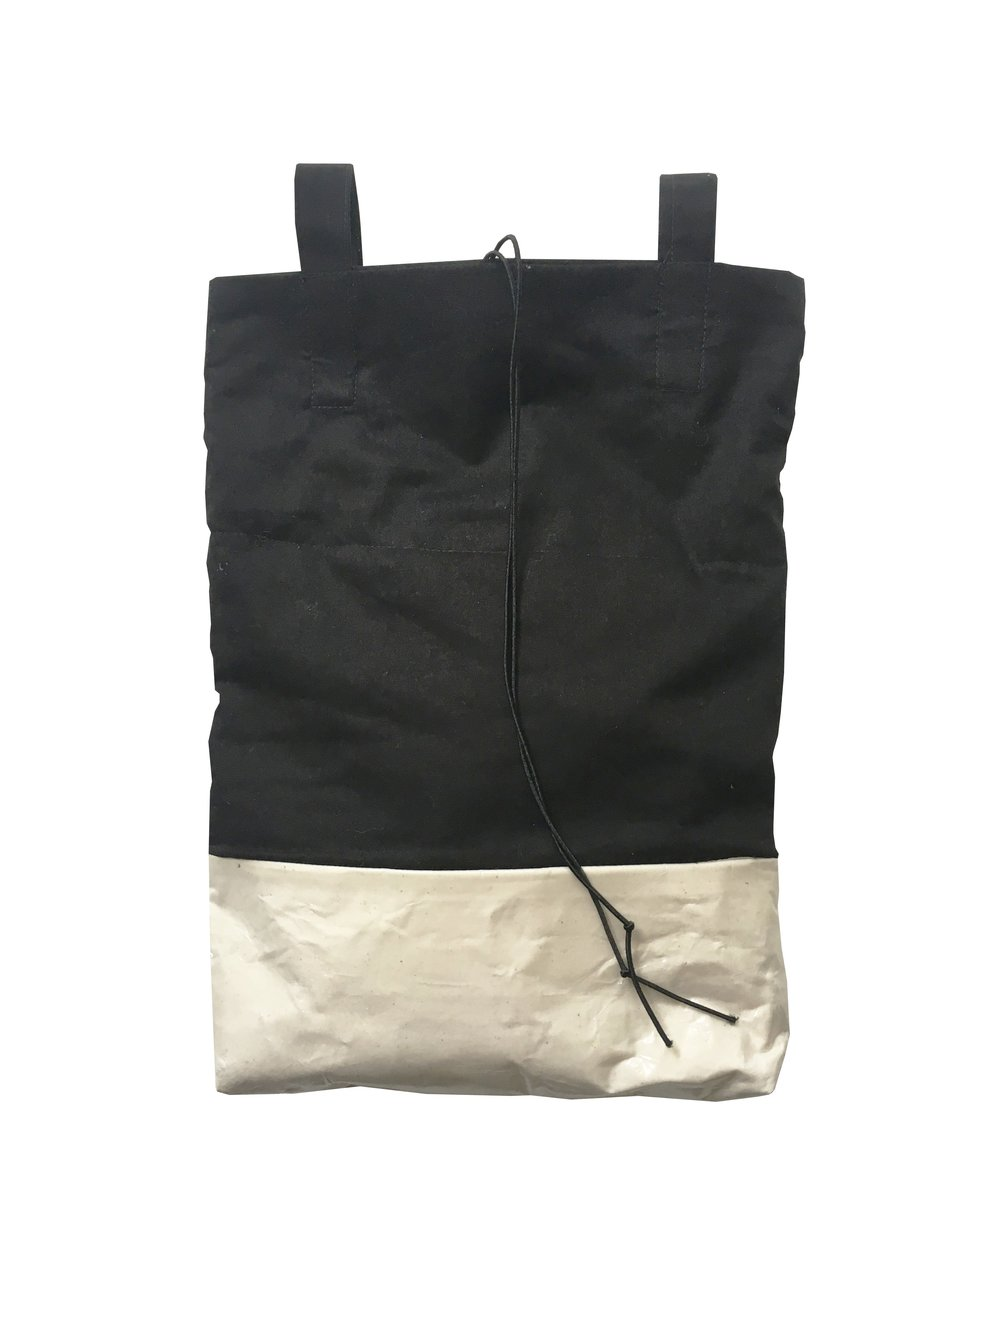 backpack4.5.jpg